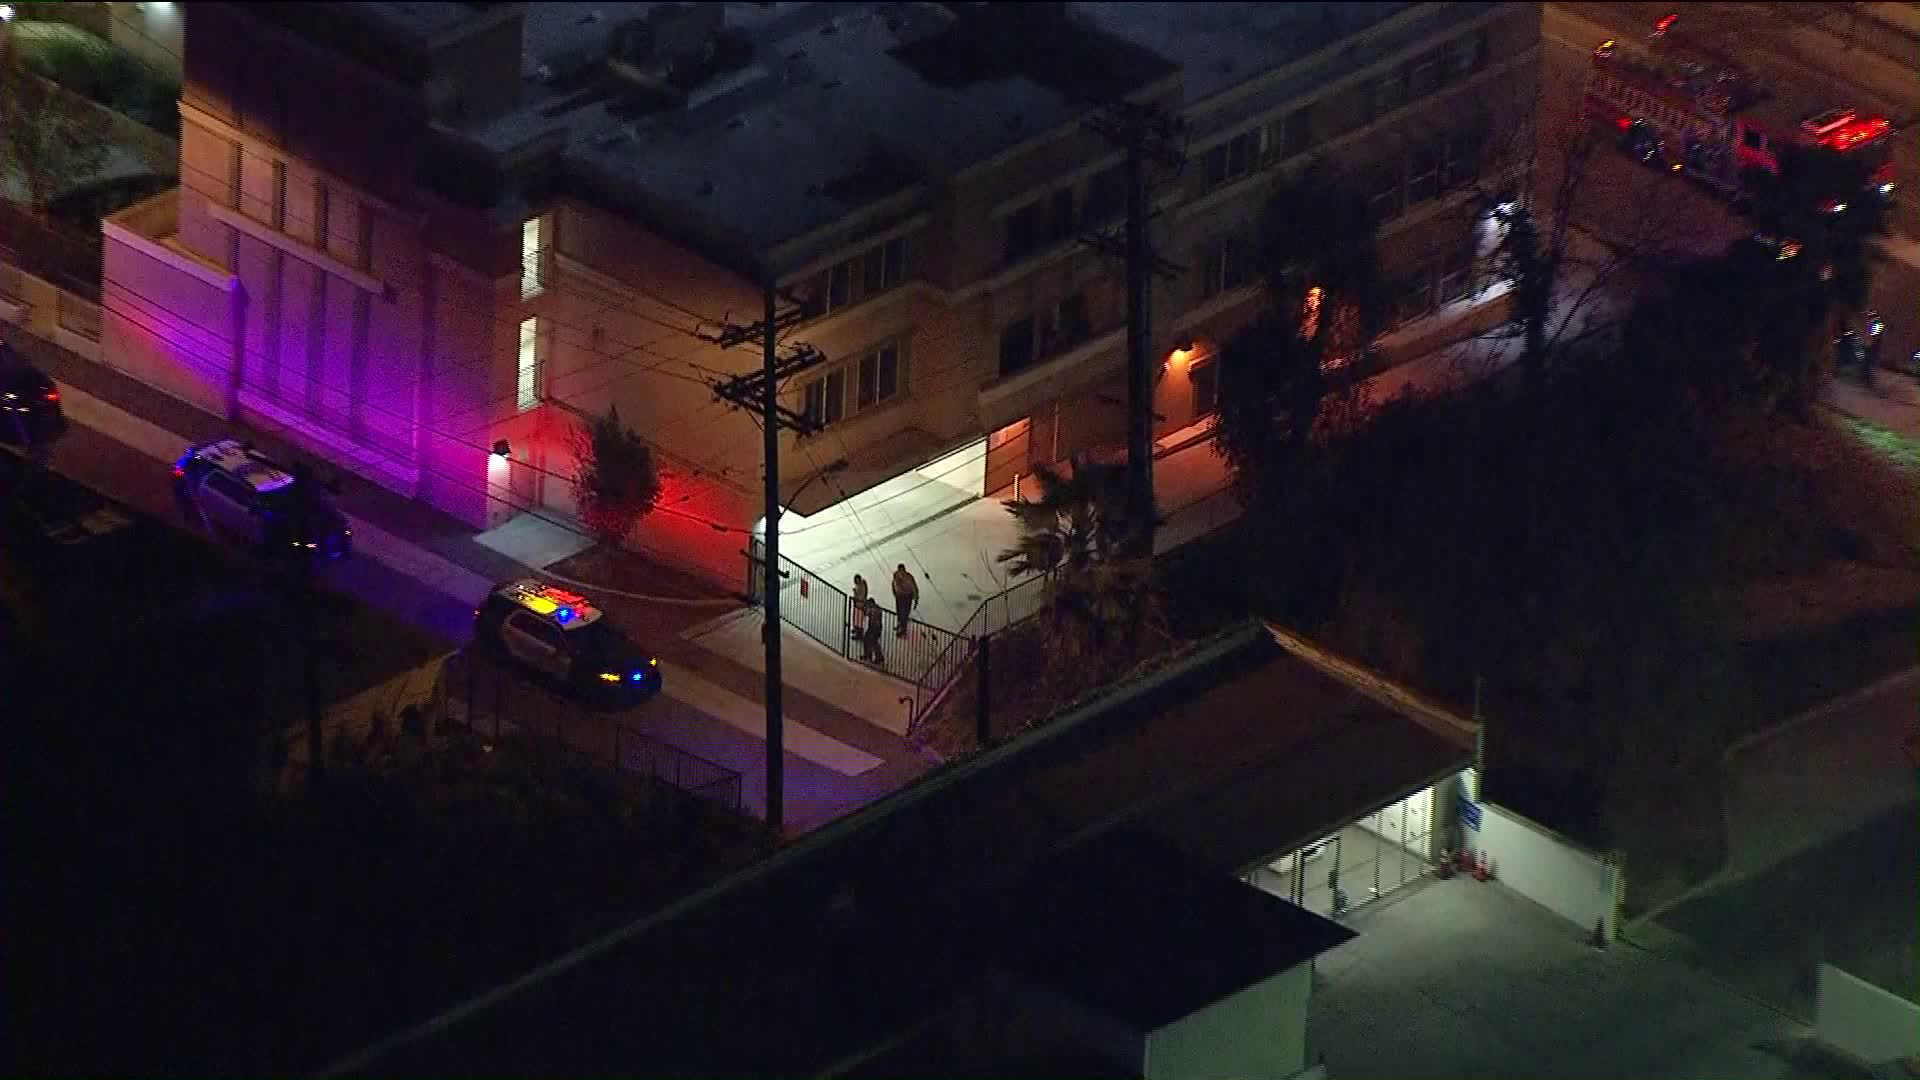 Authorities respond to the scene where a man was shot by L.A. County sheriff's deputies in East Los Angeles on Feb. 6, 2018. (Credit: KTLA)